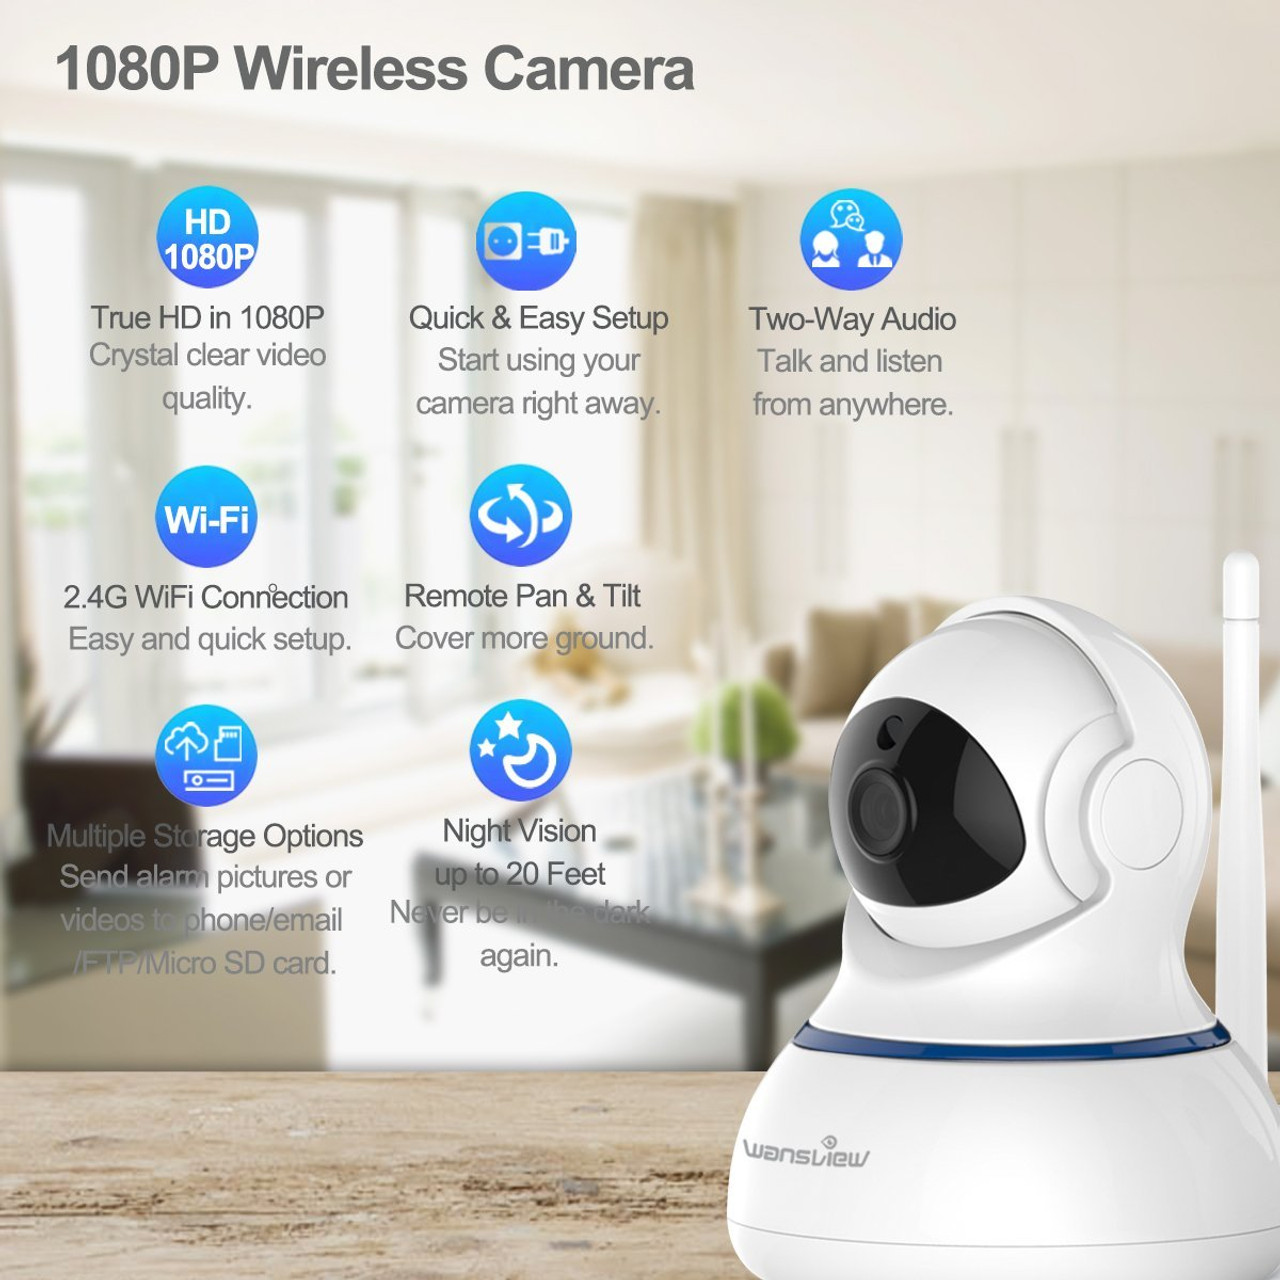 Wireless 1080P Security Camera, WiFi Home Surveillance IP Camera for  Baby/Elder/Pet/Nanny Monitor, Pan/Tilt, Two-Way Audio & Night Vision